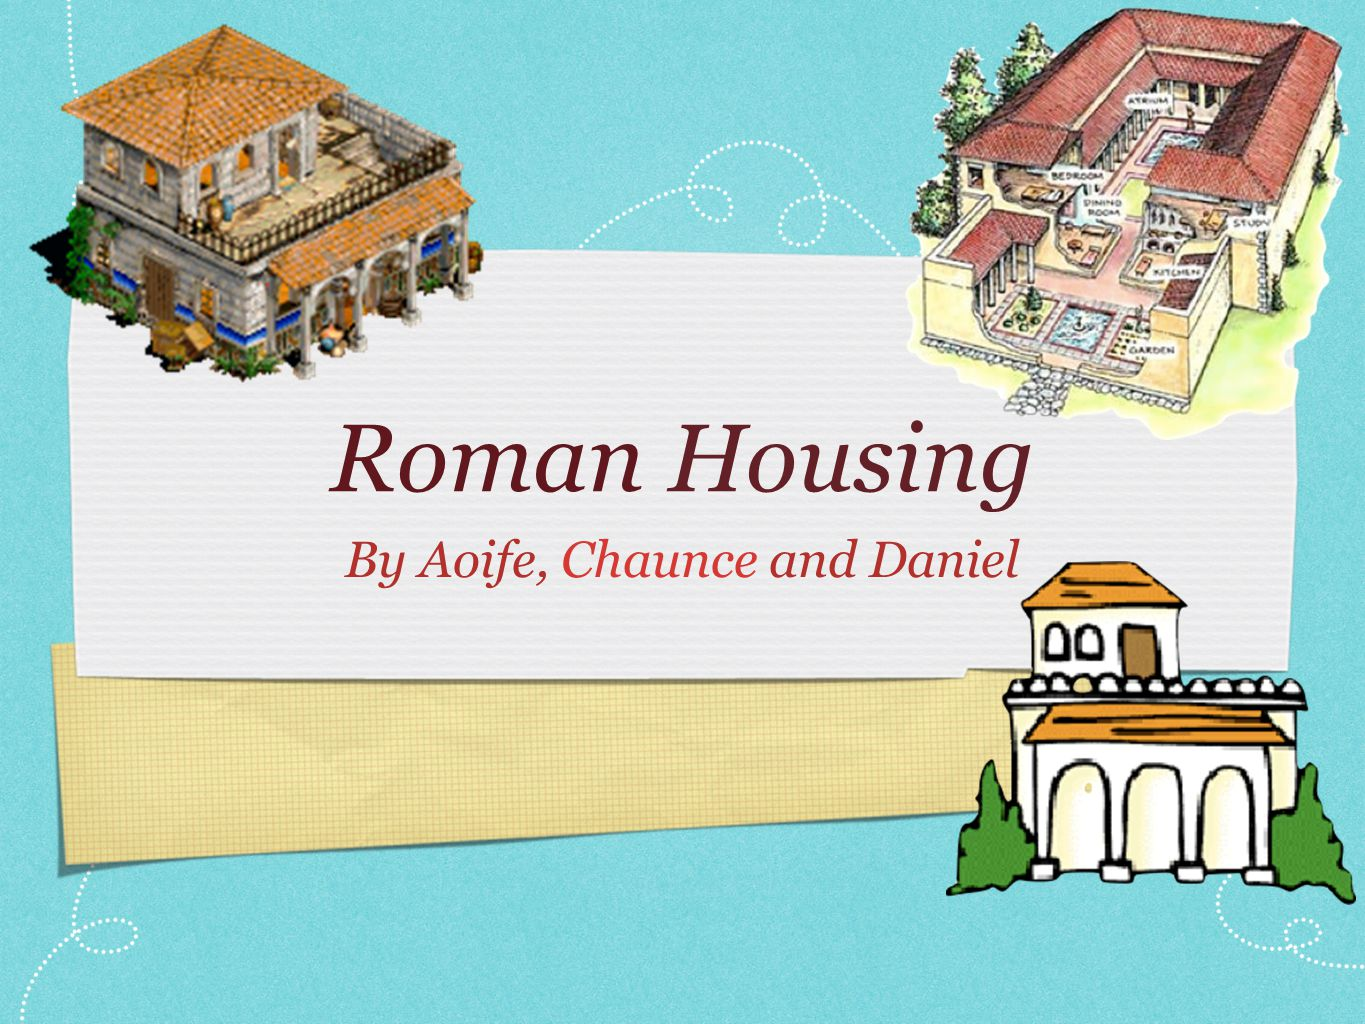 Roman Housing By Aoife, Chaunce and Daniel